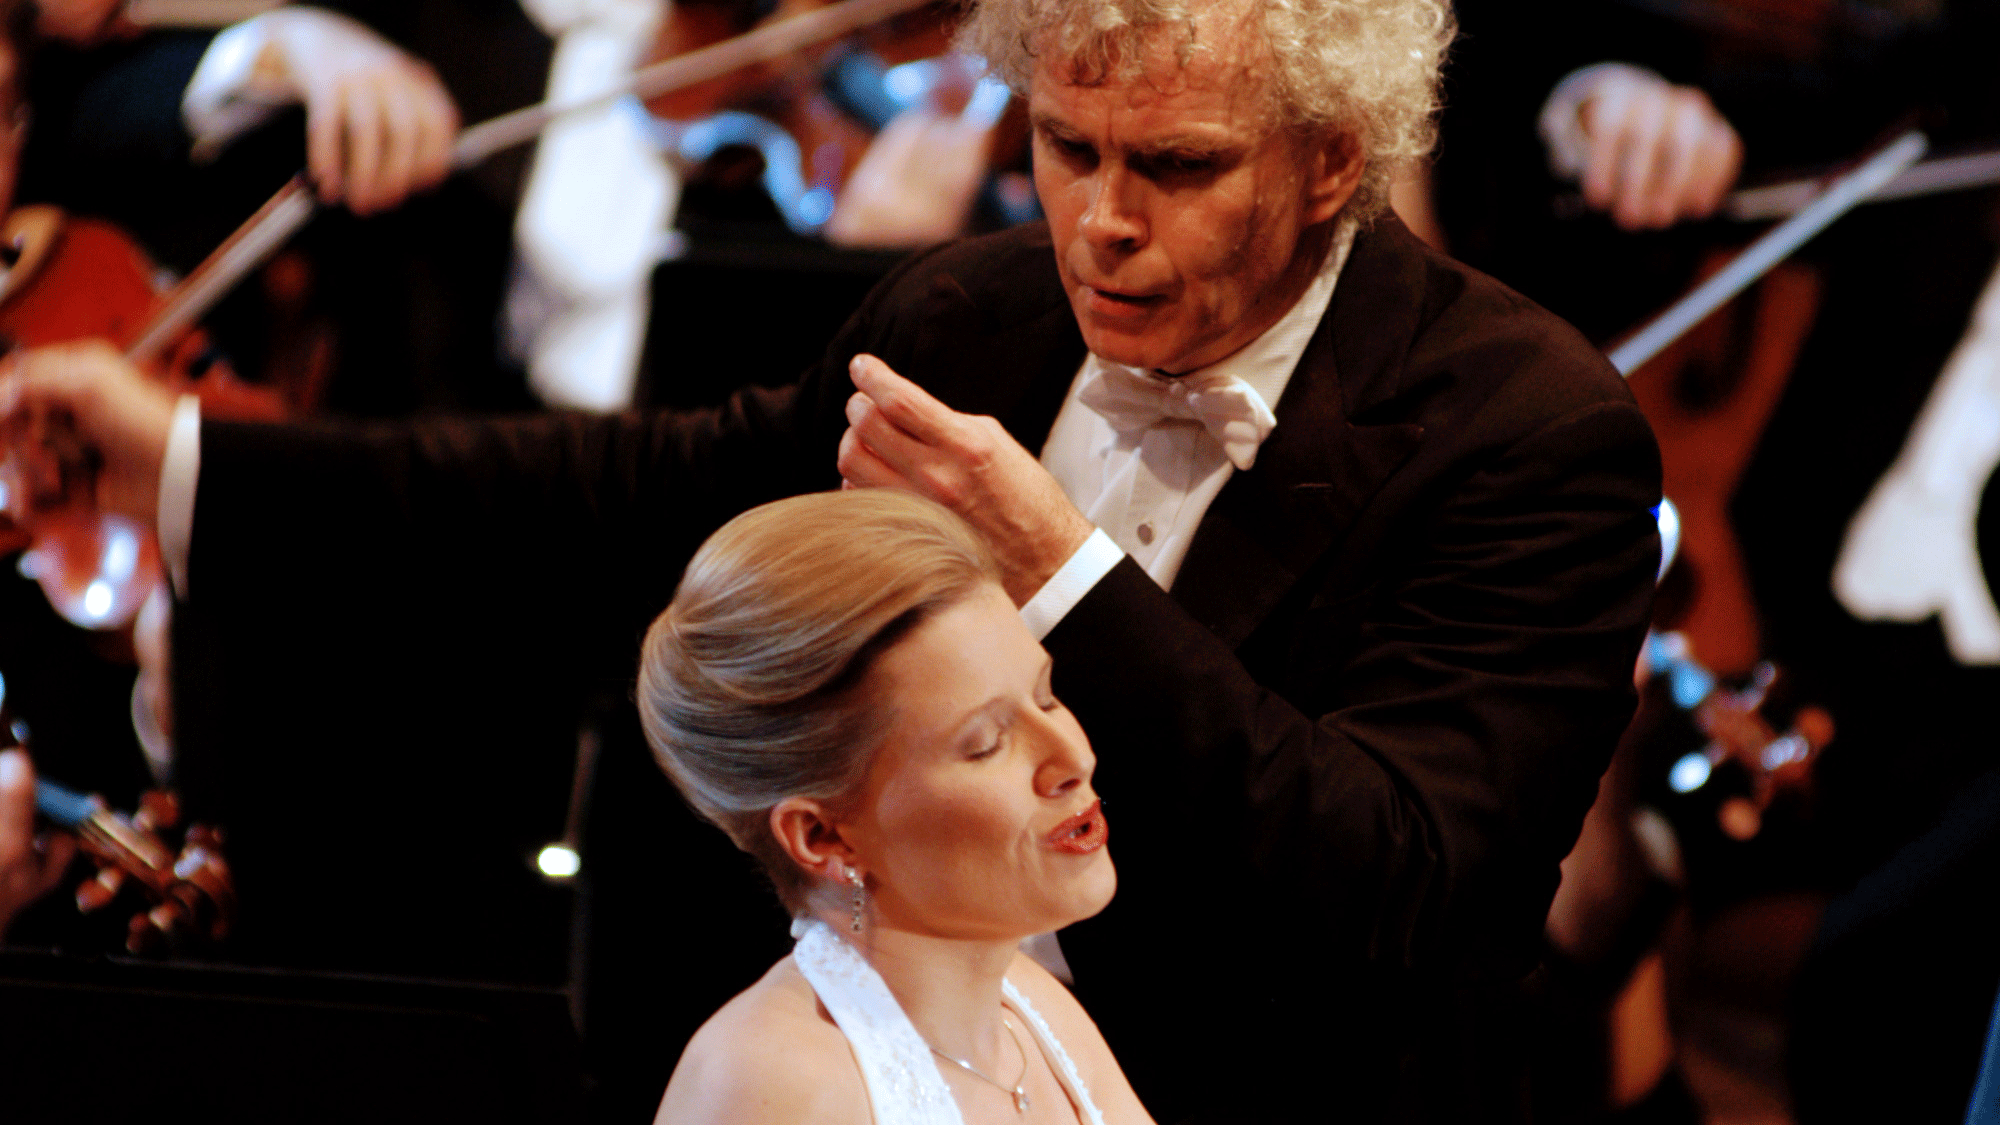 Sir Simon Rattle conducts Carl Orff's Carmina Burana – With Sally Matthews, Lawrence Brownlee, and Christian Gerhaher